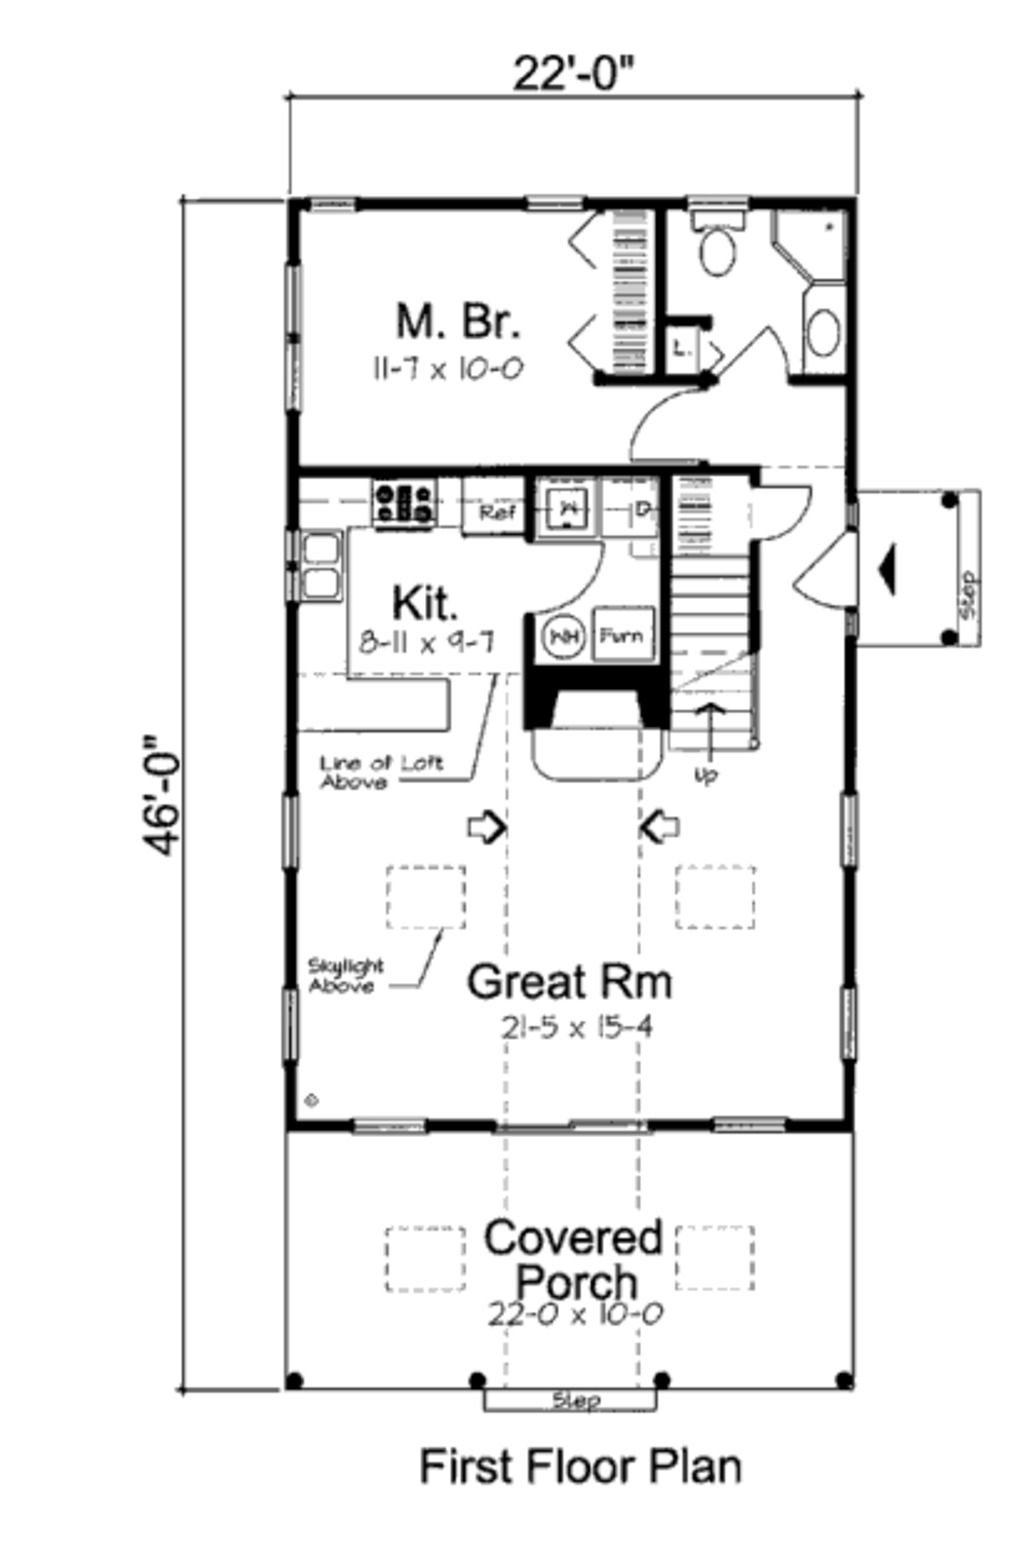 Cottage Style House Plan 2 Beds 2 Baths 1466 Sq Ft Plan 1 267 Garage Floor Plans Cottage Style House Plans Mother In Law Cottage